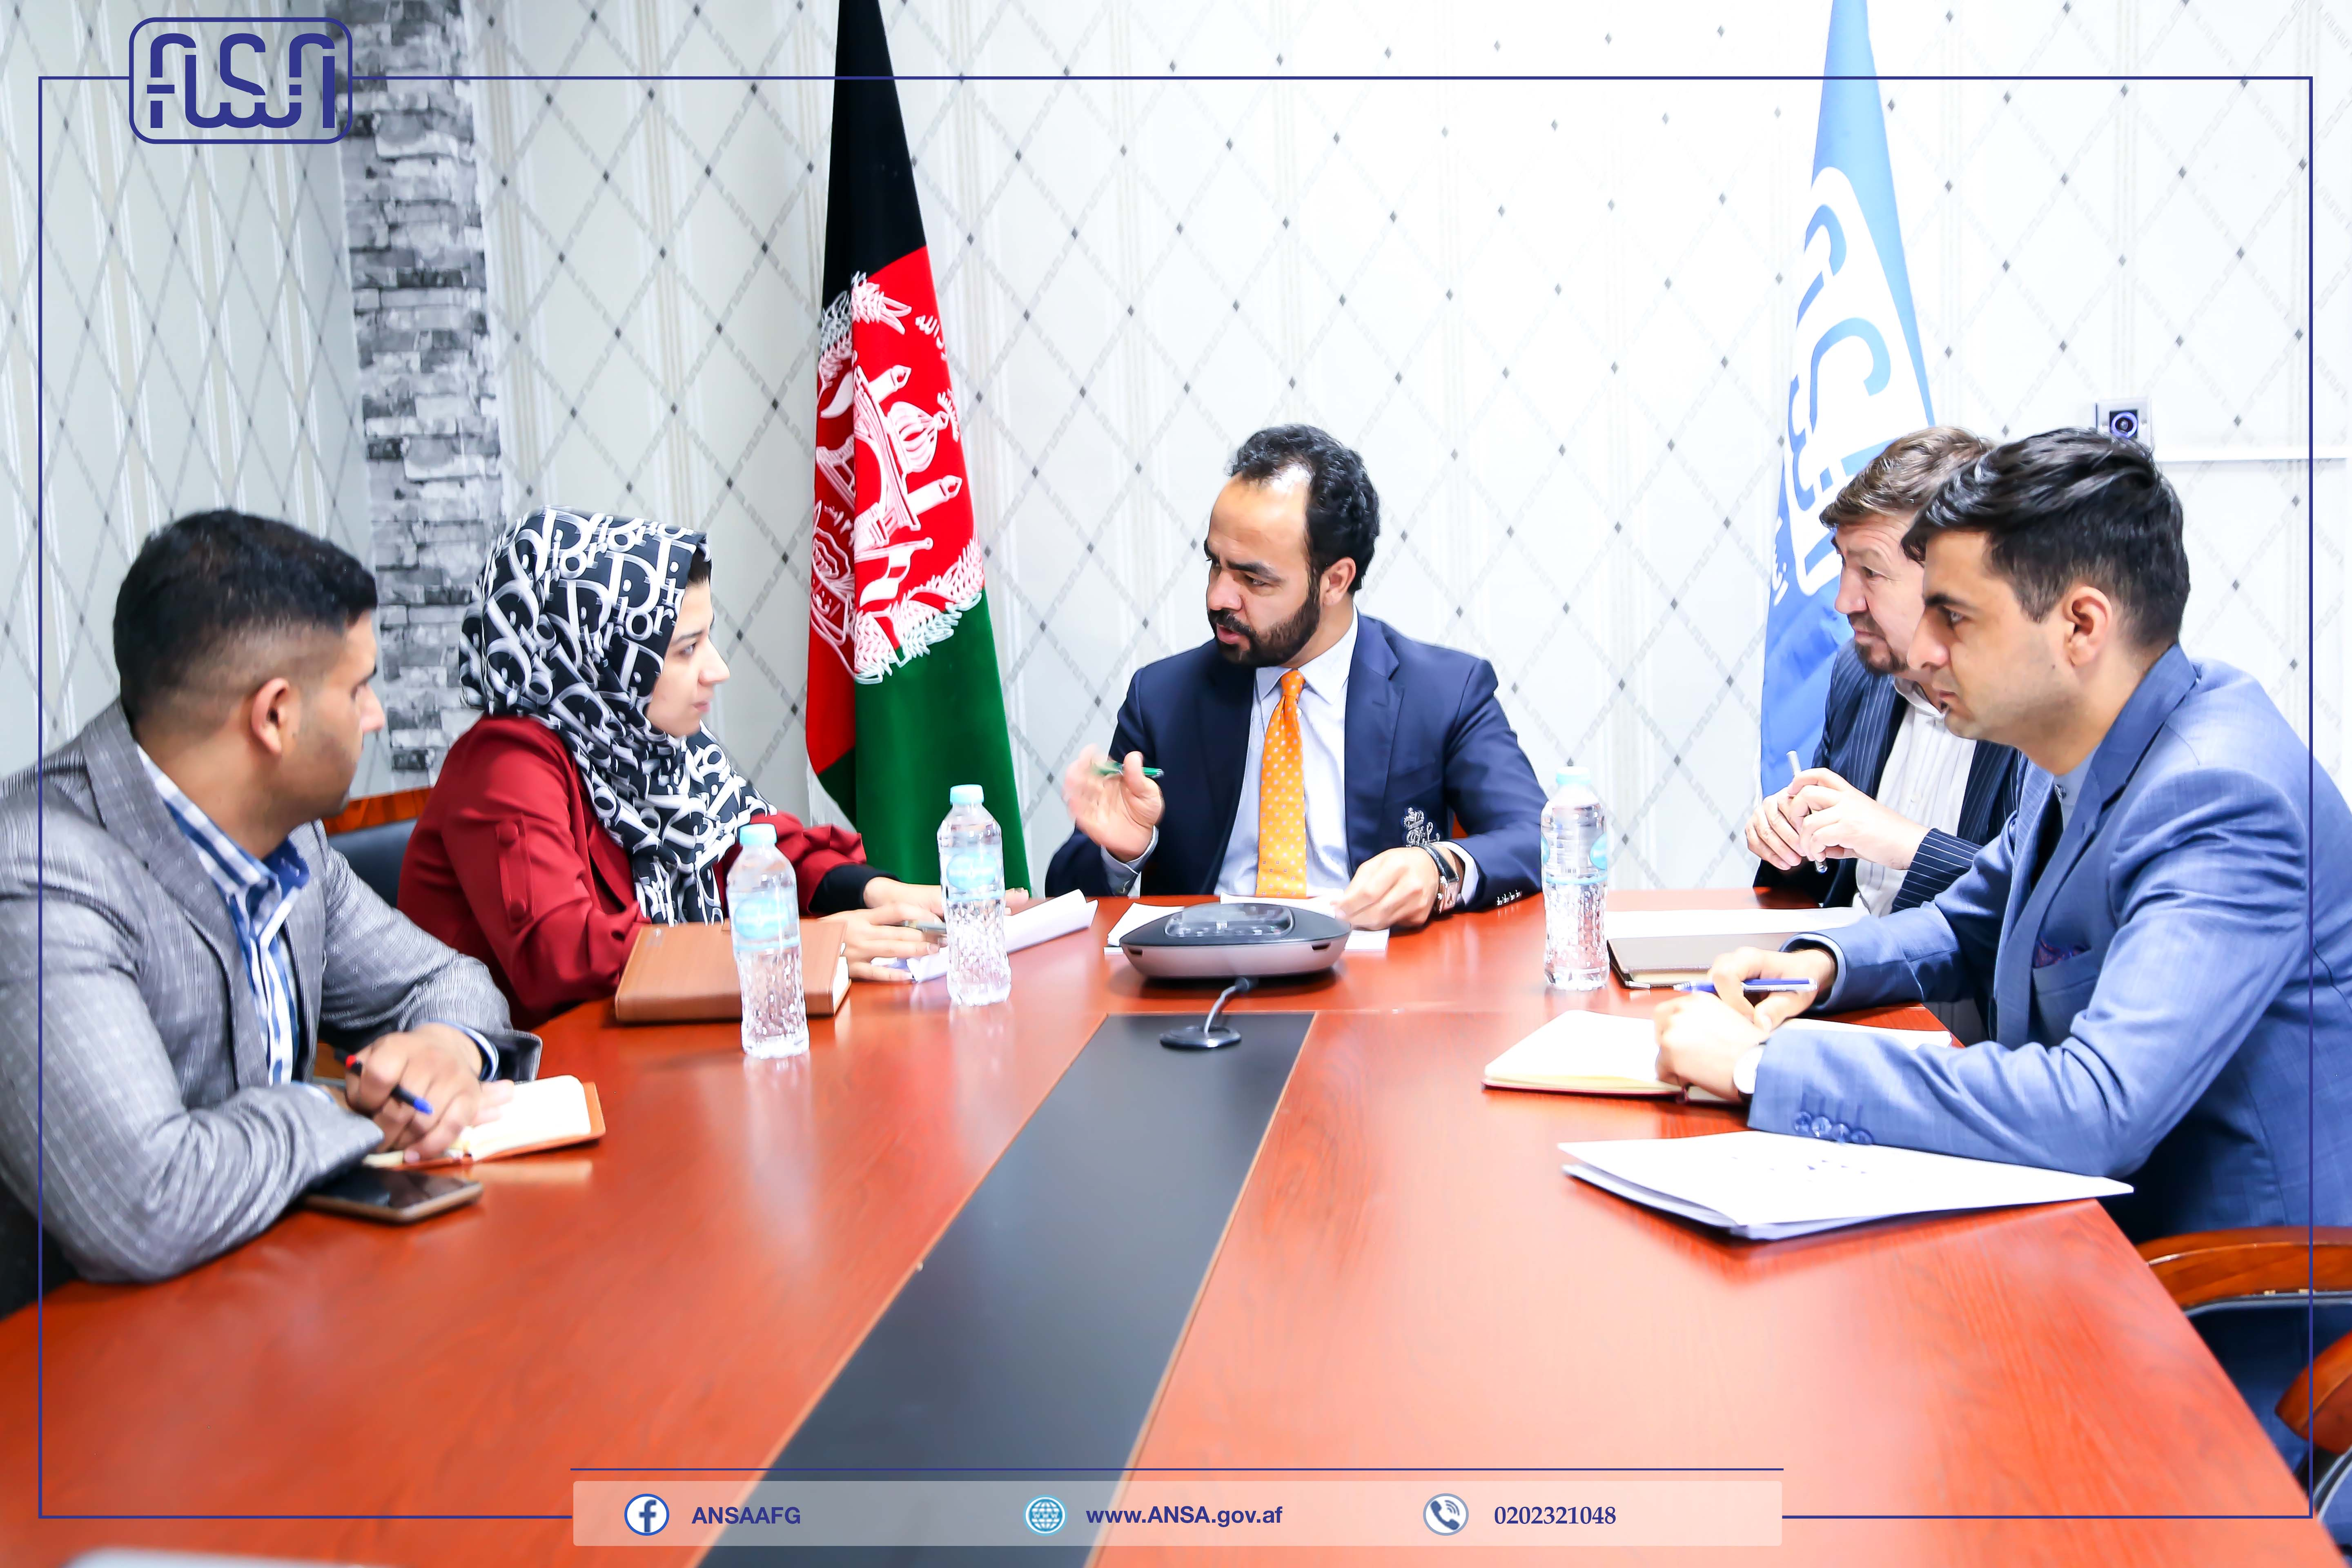 The meeting between the National Standards Authority and the International Trade Center (ITC) was held online.